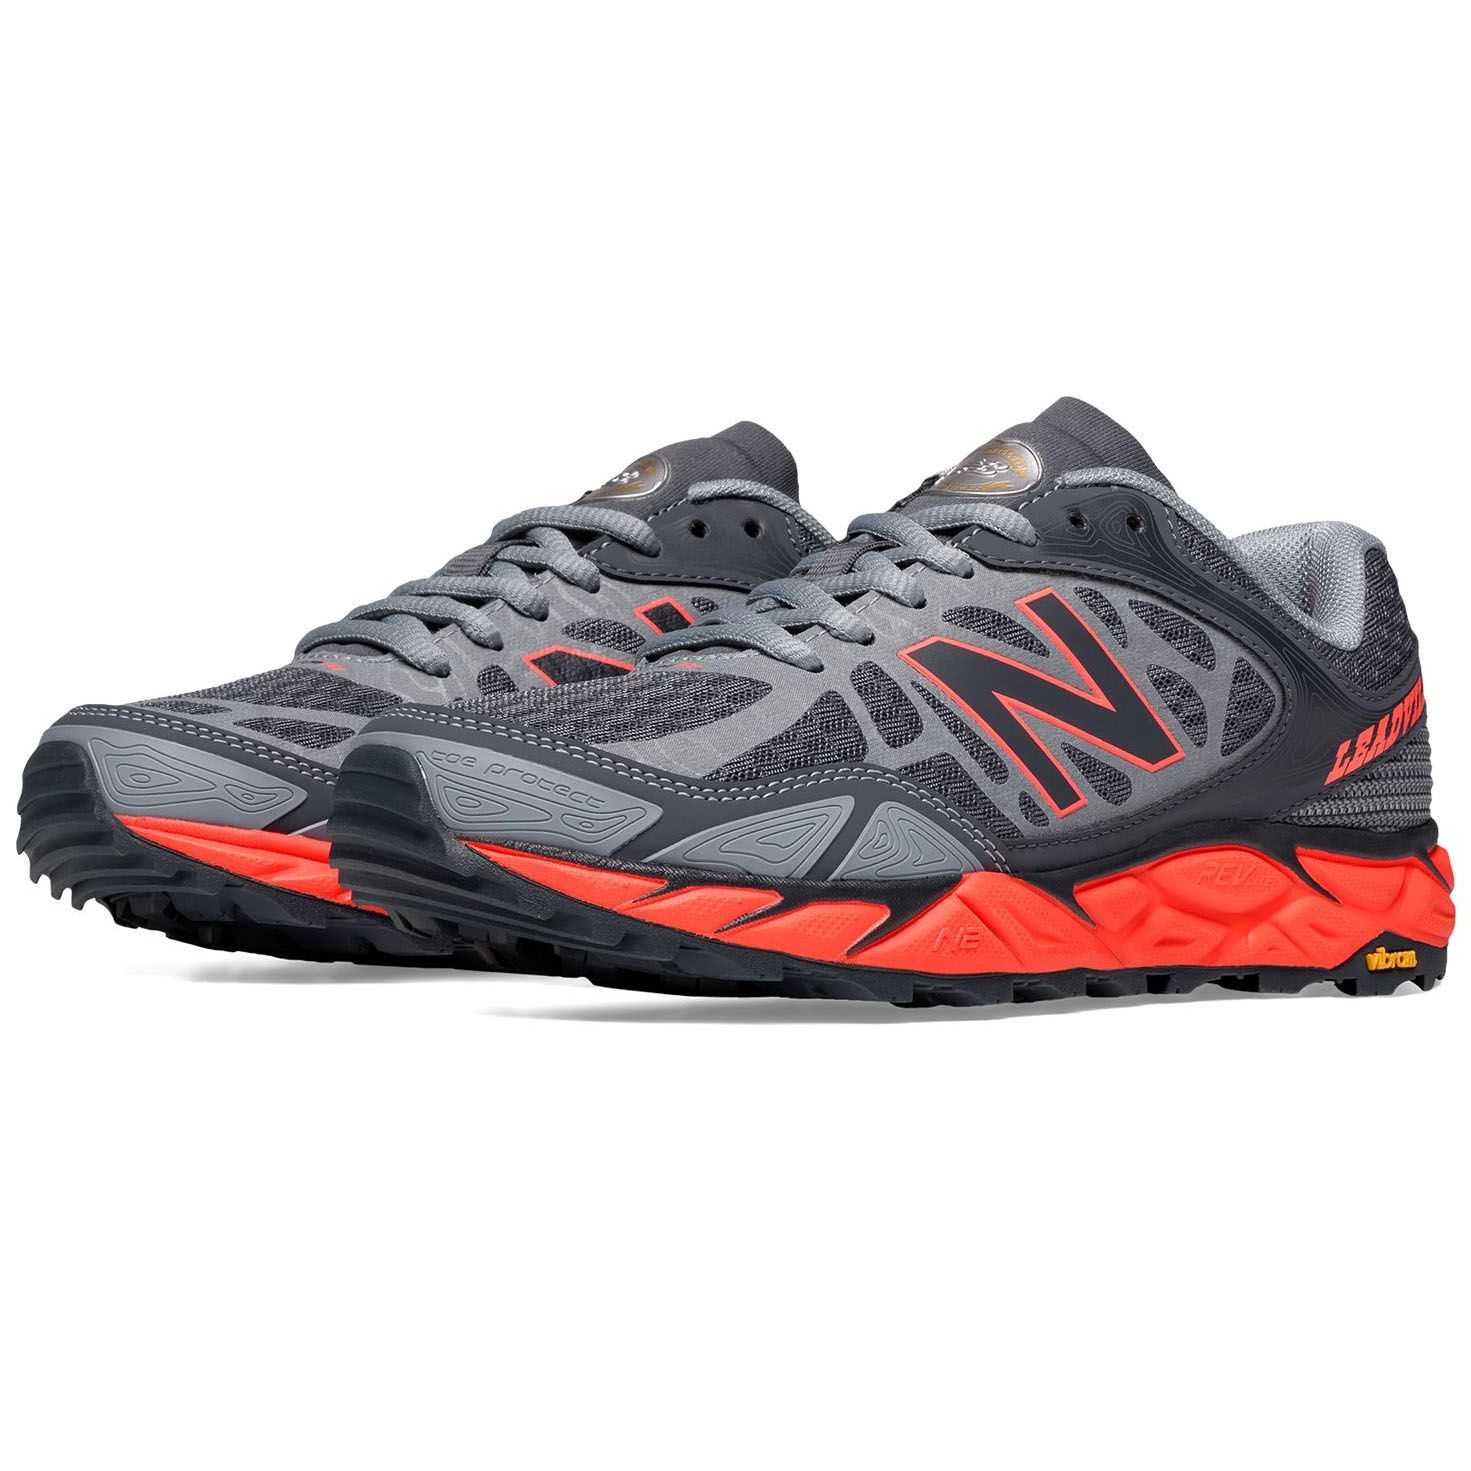 Good Shoes For Running And Gym